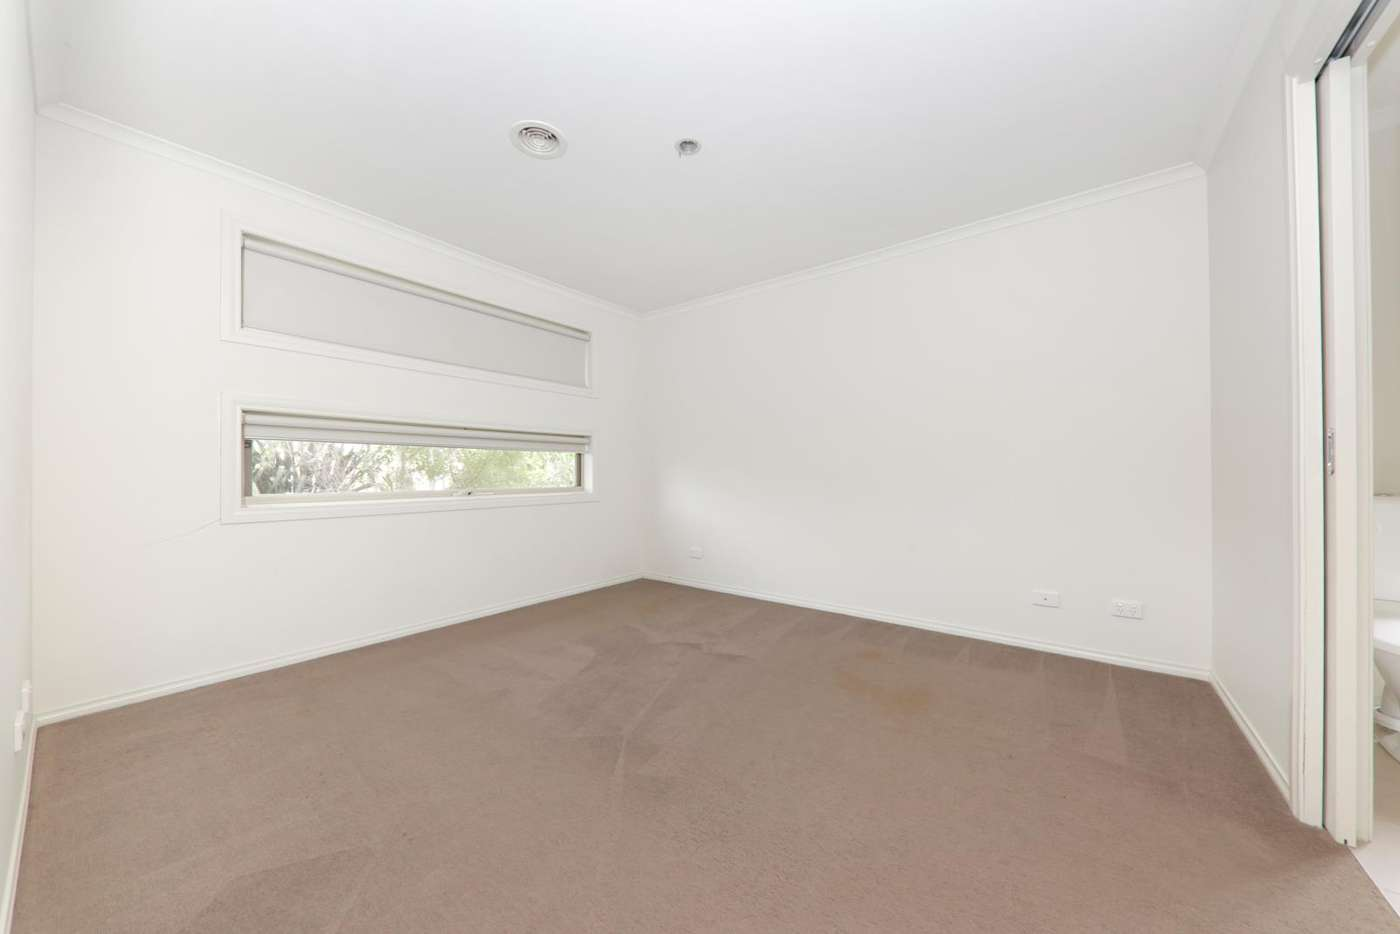 Sixth view of Homely house listing, 11 Hayes Court, Pakenham VIC 3810